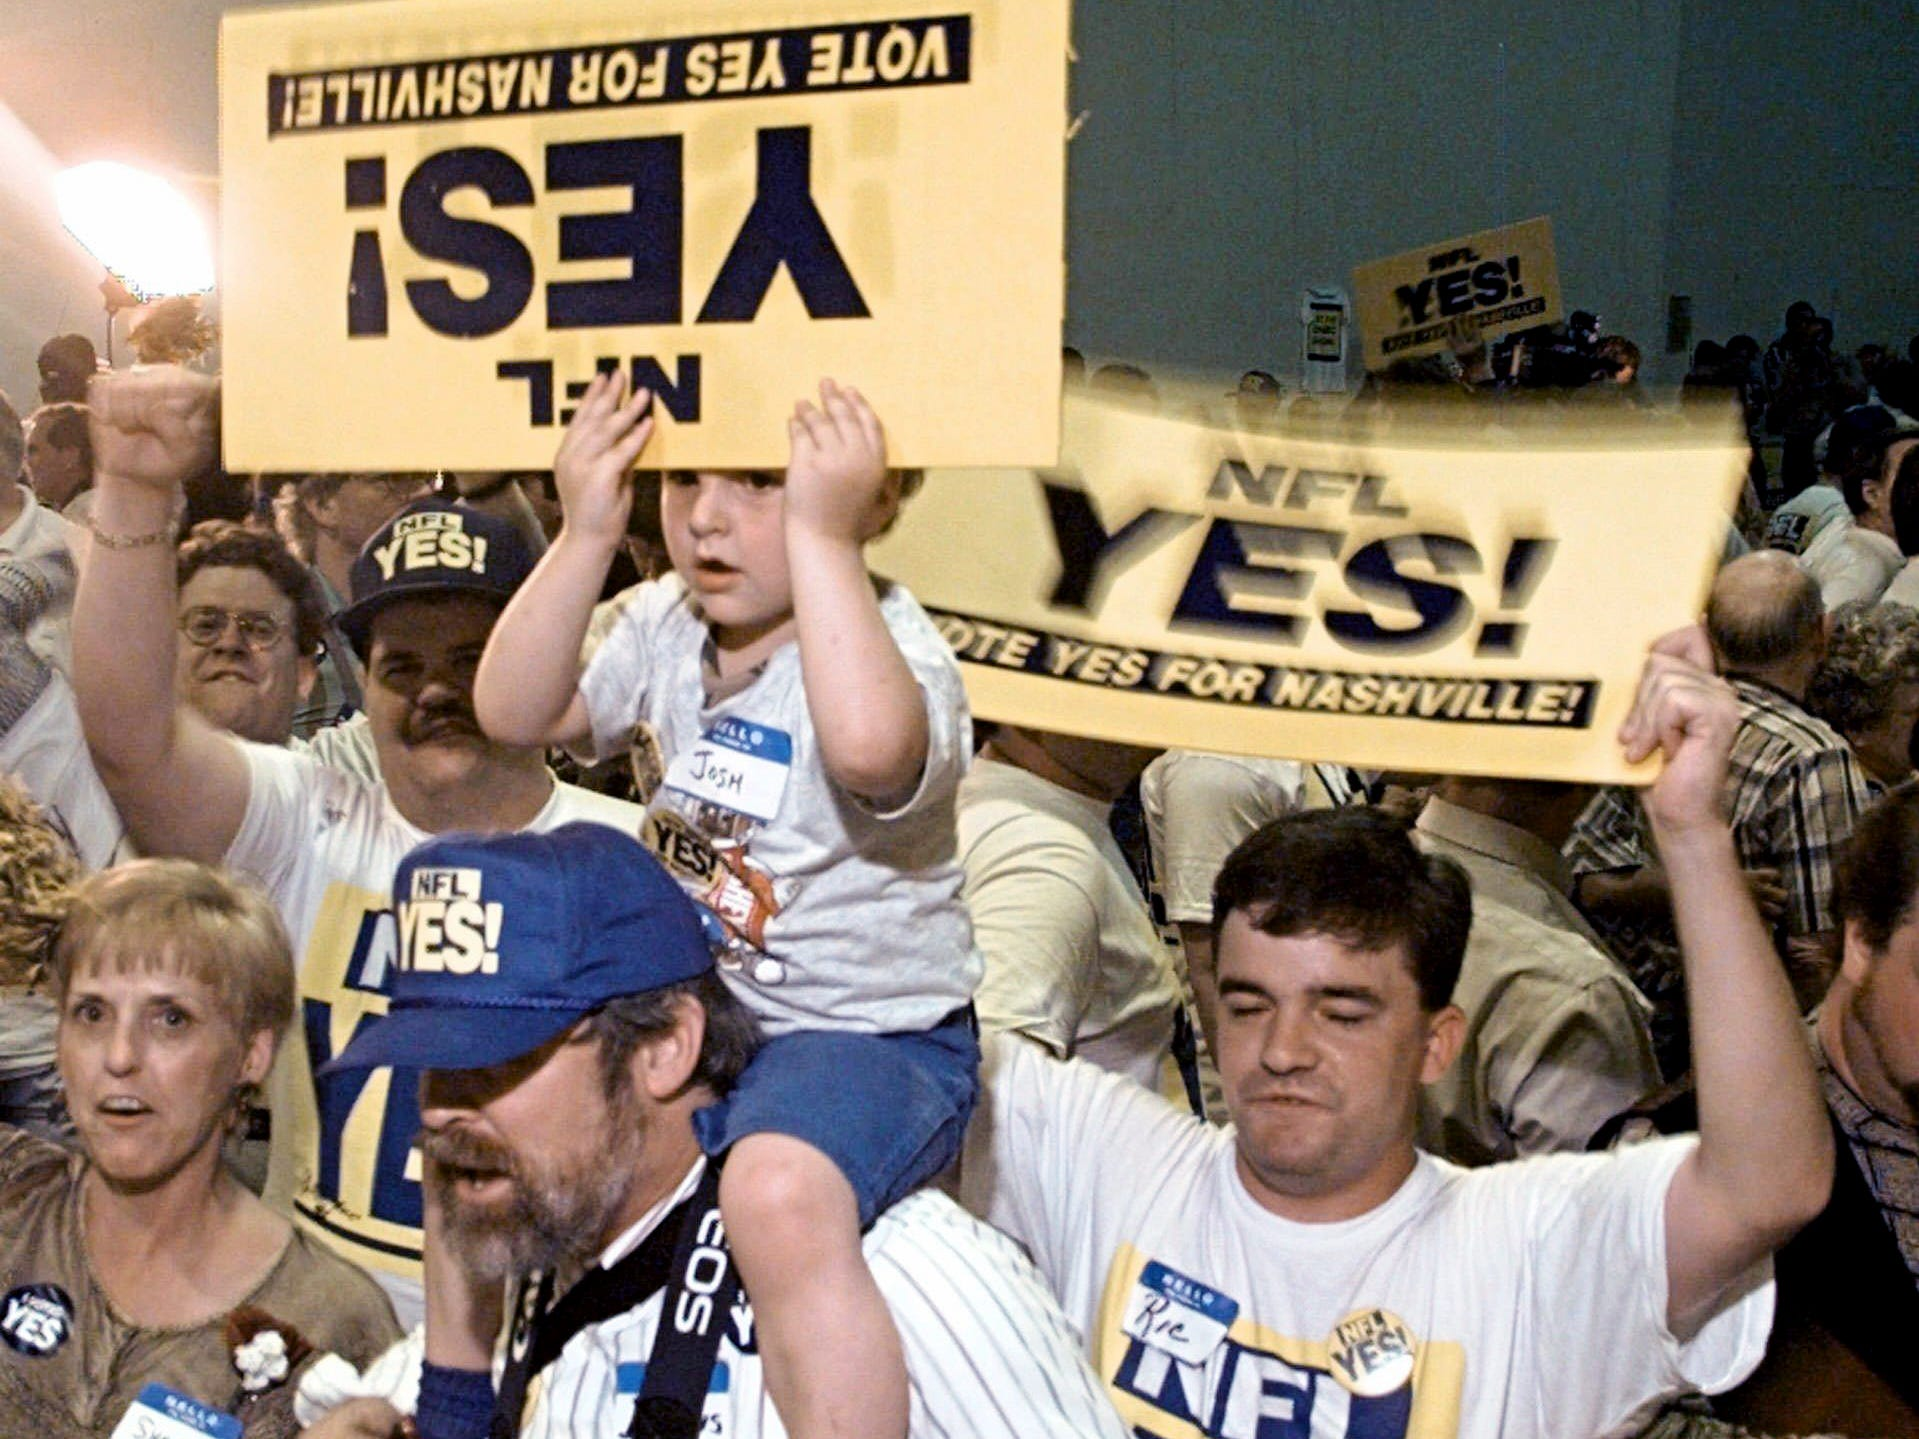 Josh Runkles, 4, holds his sign upside down as he rides on the shoulders of his grandfather, Dennis Schutt, at a victory rally in Nashville May 7, 1996 after voters approved a referendum to bring the Houston Oilers to Nashville in 1998, if not earlier.